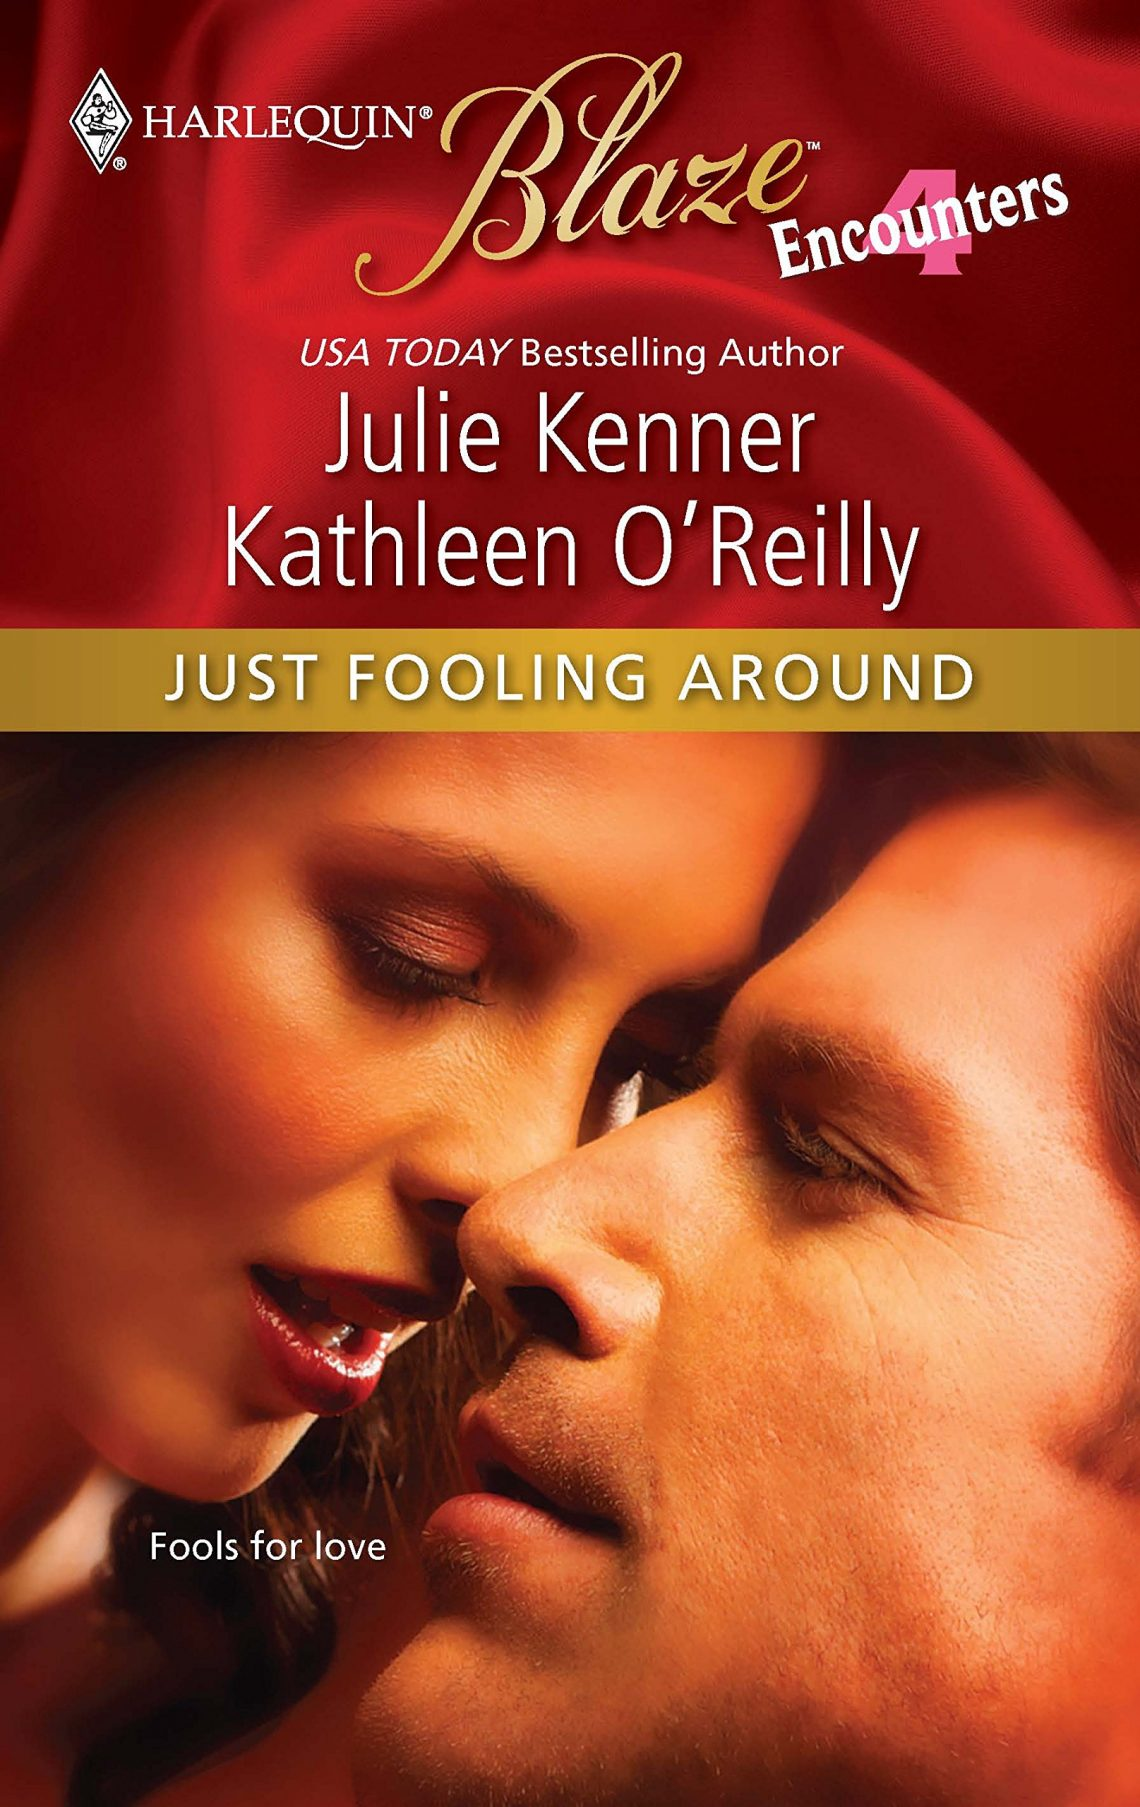 Just Fooling Around by Julie Kenner & Kathleen O'Reilly